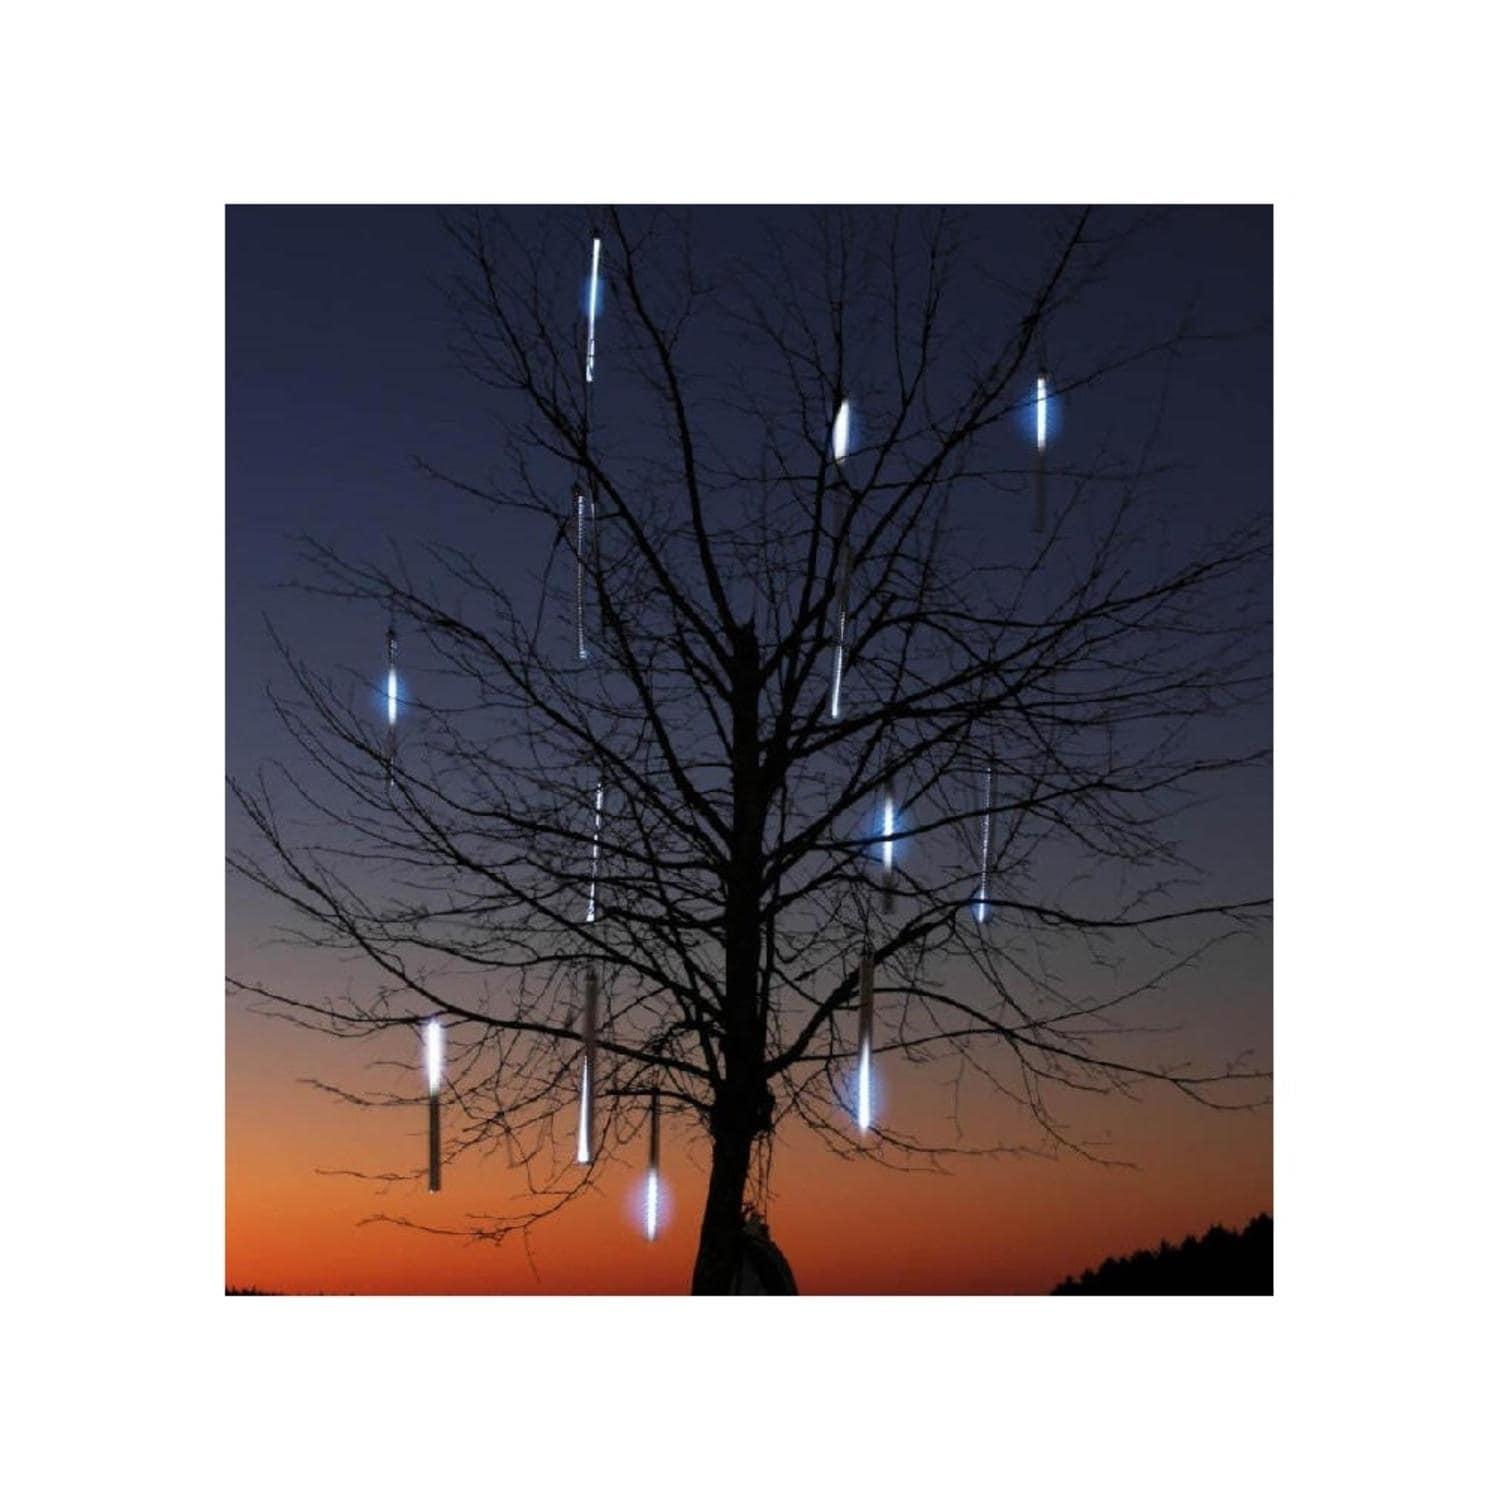 Set of 10 Dripping Icicle Double-Sided Christmas Light Tu...